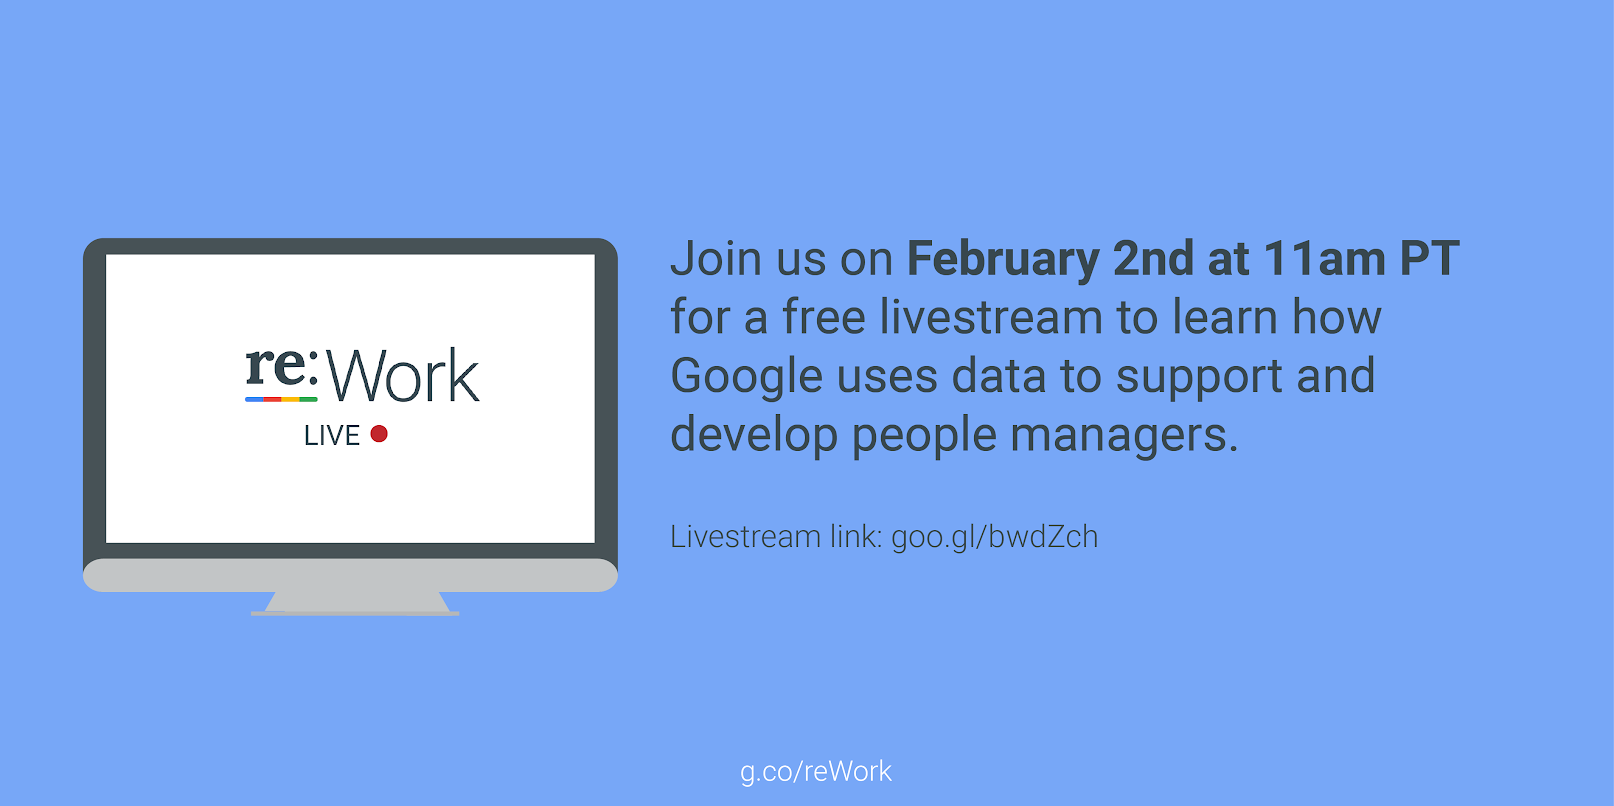 Livestream on Google's research-based manager training